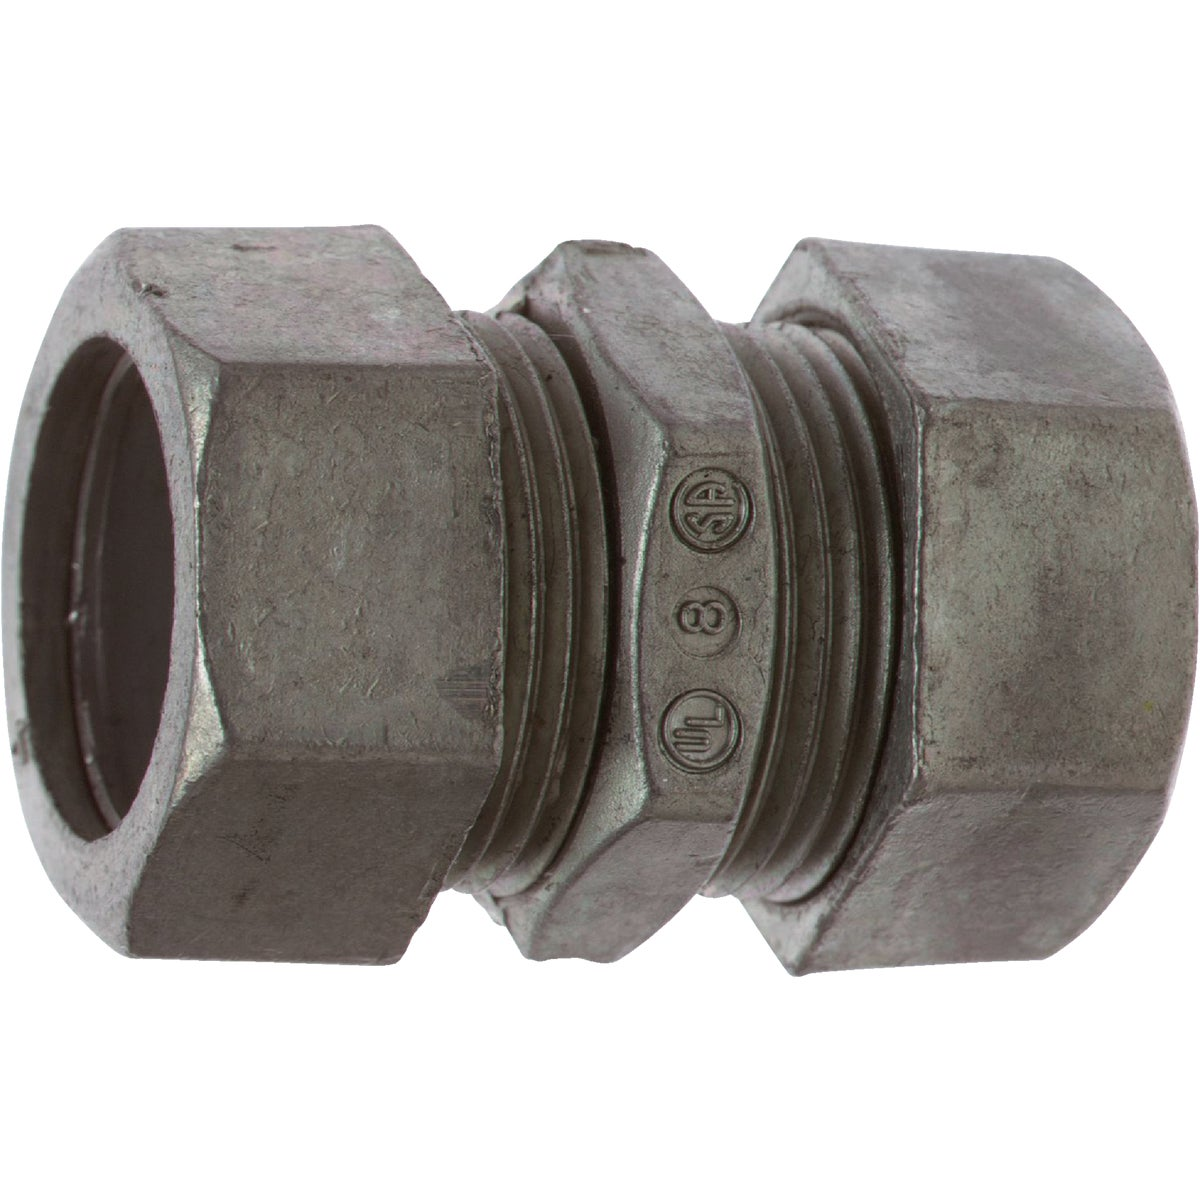 "1/2"" EMT COUPLING - TK211SC1 by Thomas & Betts"